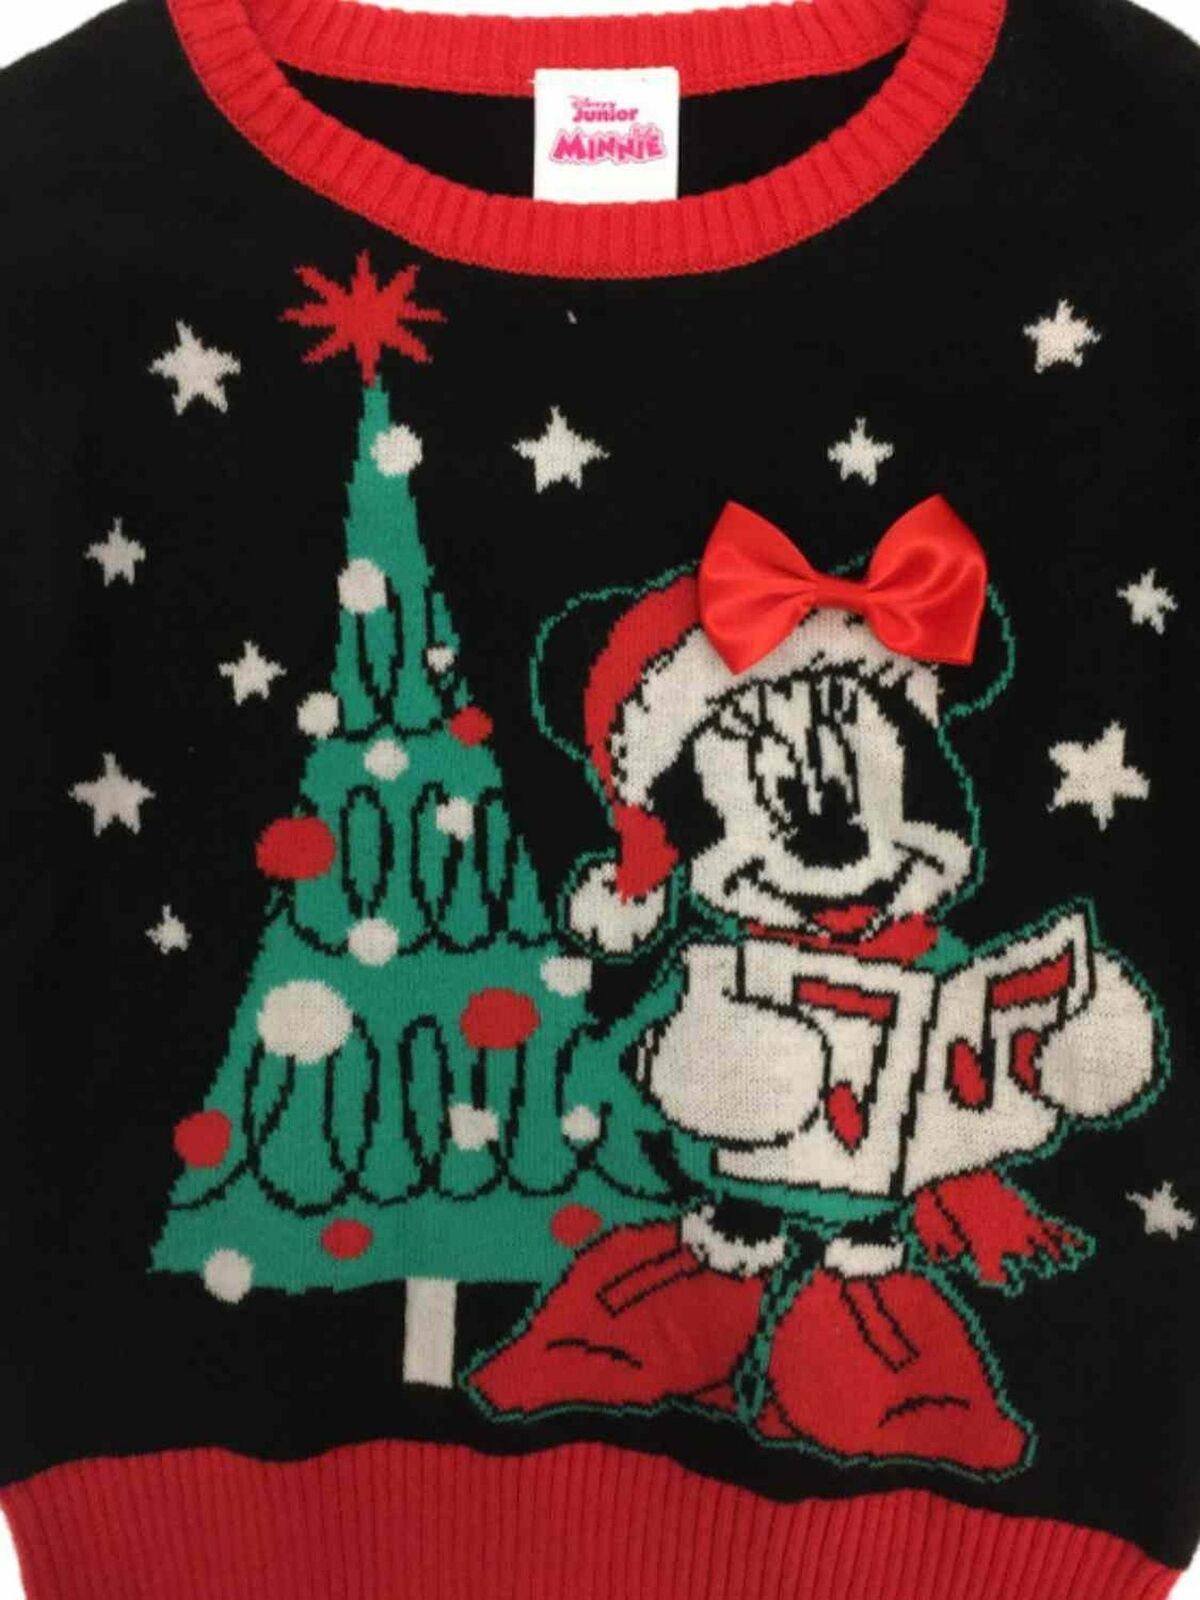 Disney Minnie Mouse 12 Month Sweater Toddler Girls Holiday Christmas Ugly